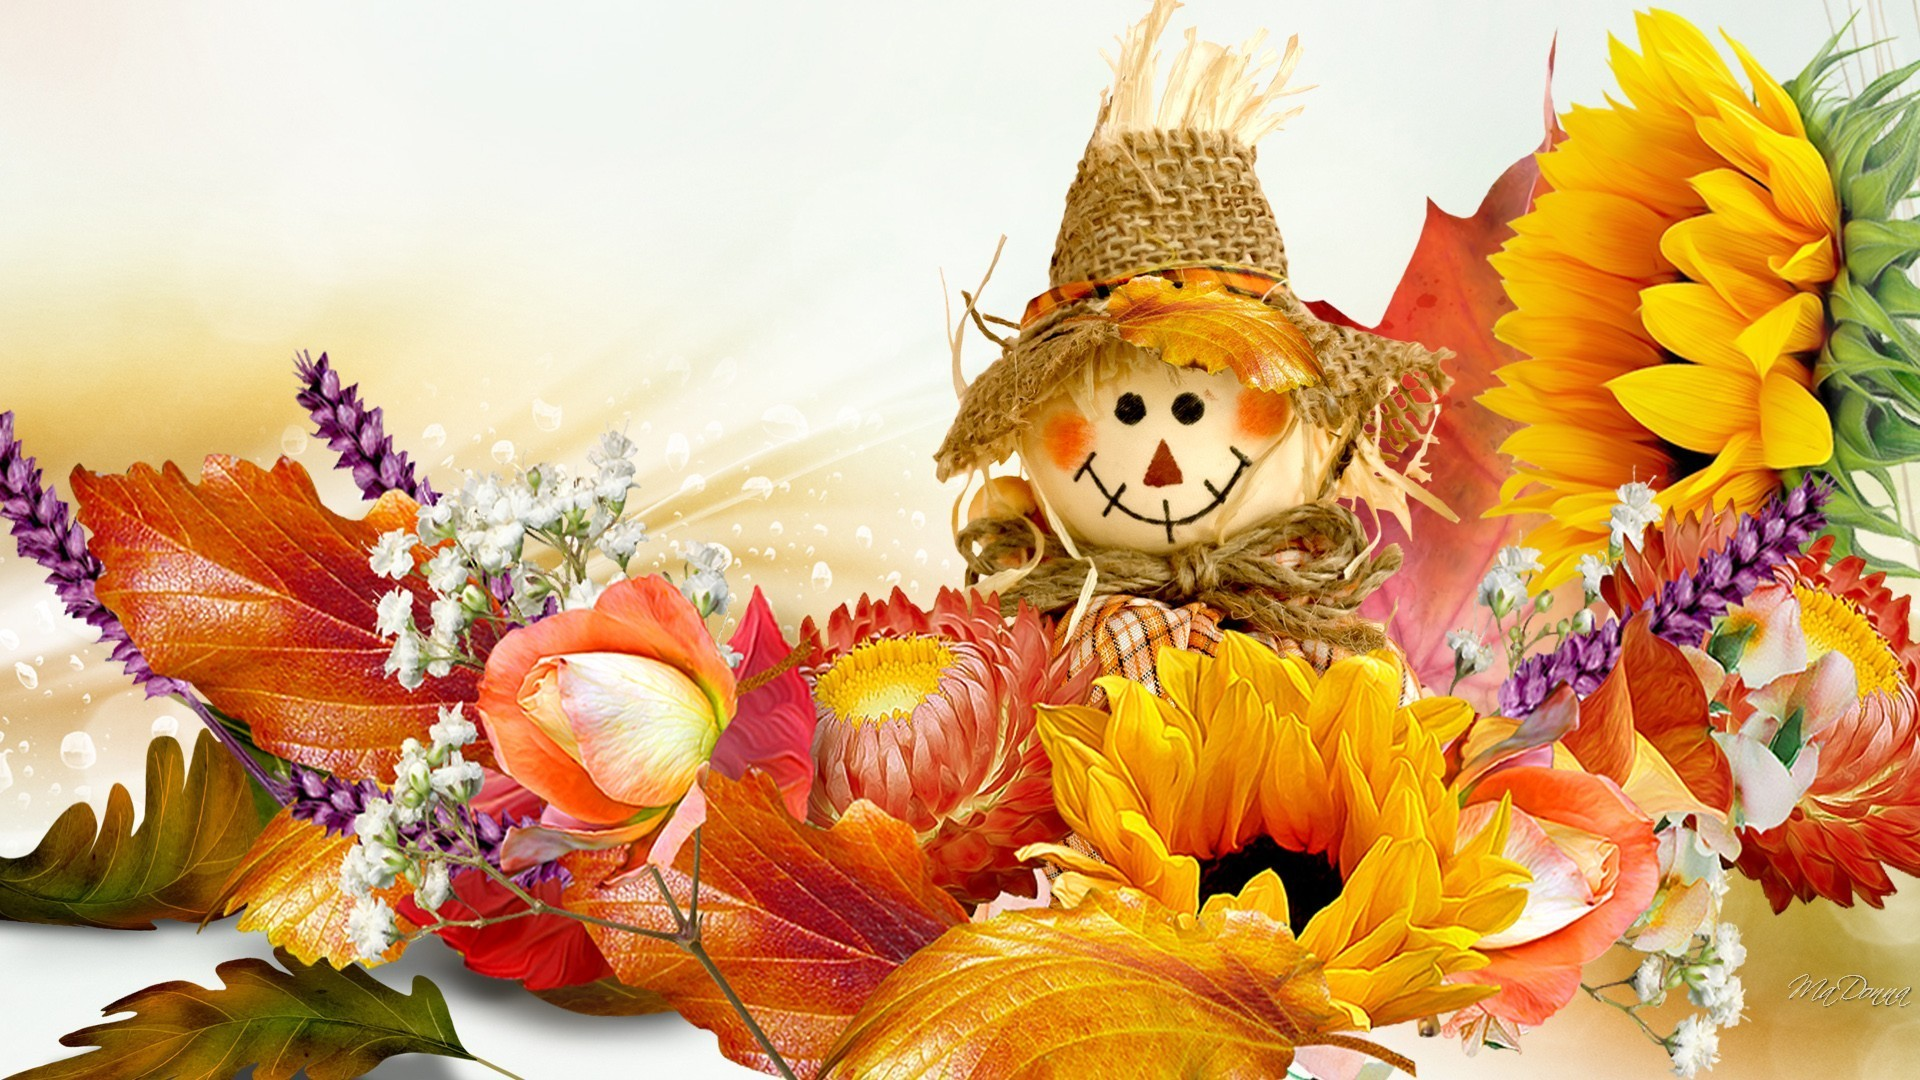 1920x1080 Doll Basics Happy Sunflowers Rose Scarecrow Fall Flowers Smile Gold Autumn Orange Leaves Flower Wallpaper